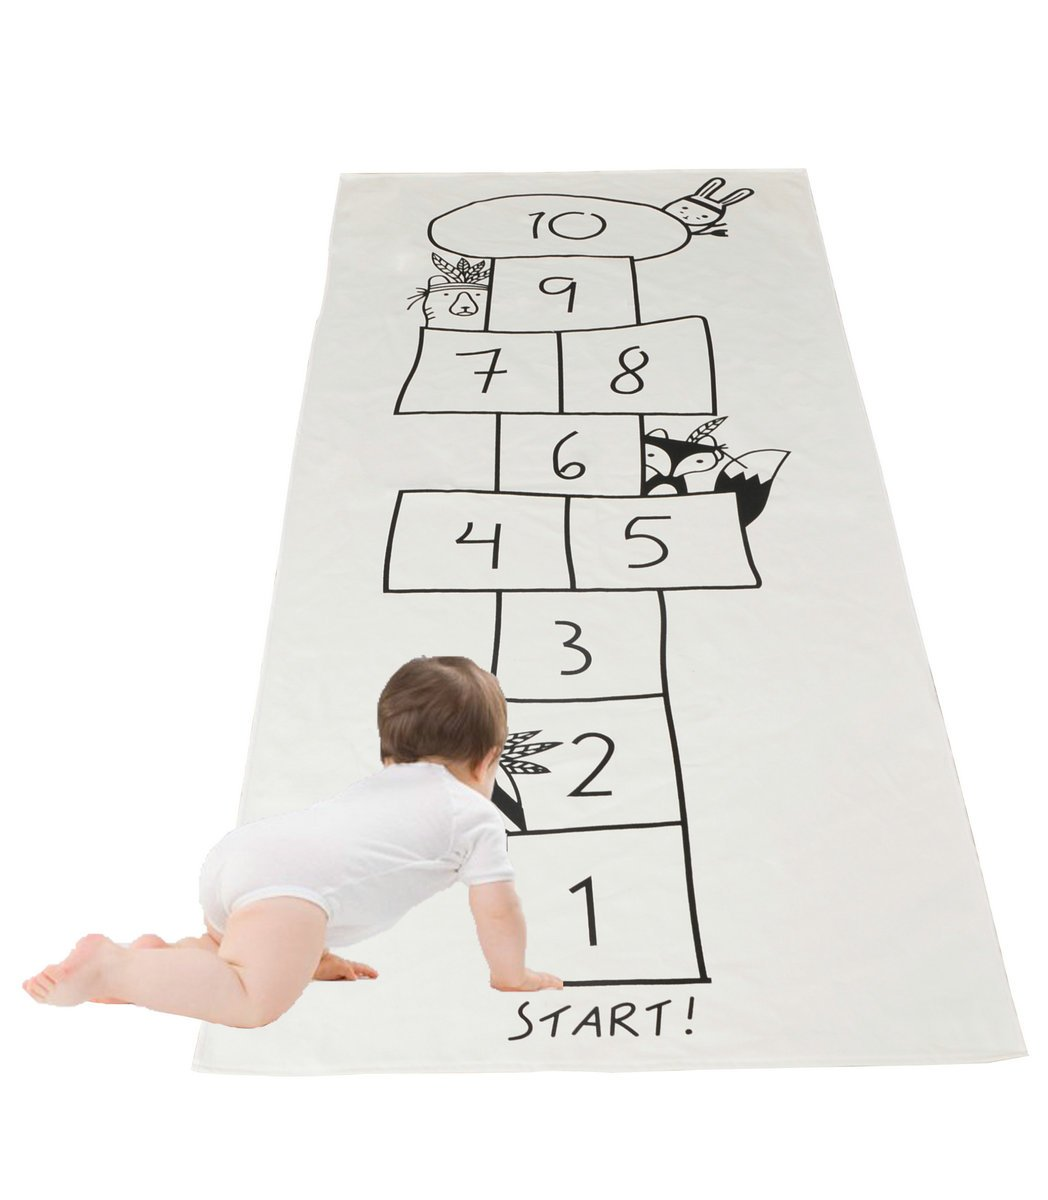 kaguster Kid chilren Game Rug Play Carpets (Hopscotch Game Rug)